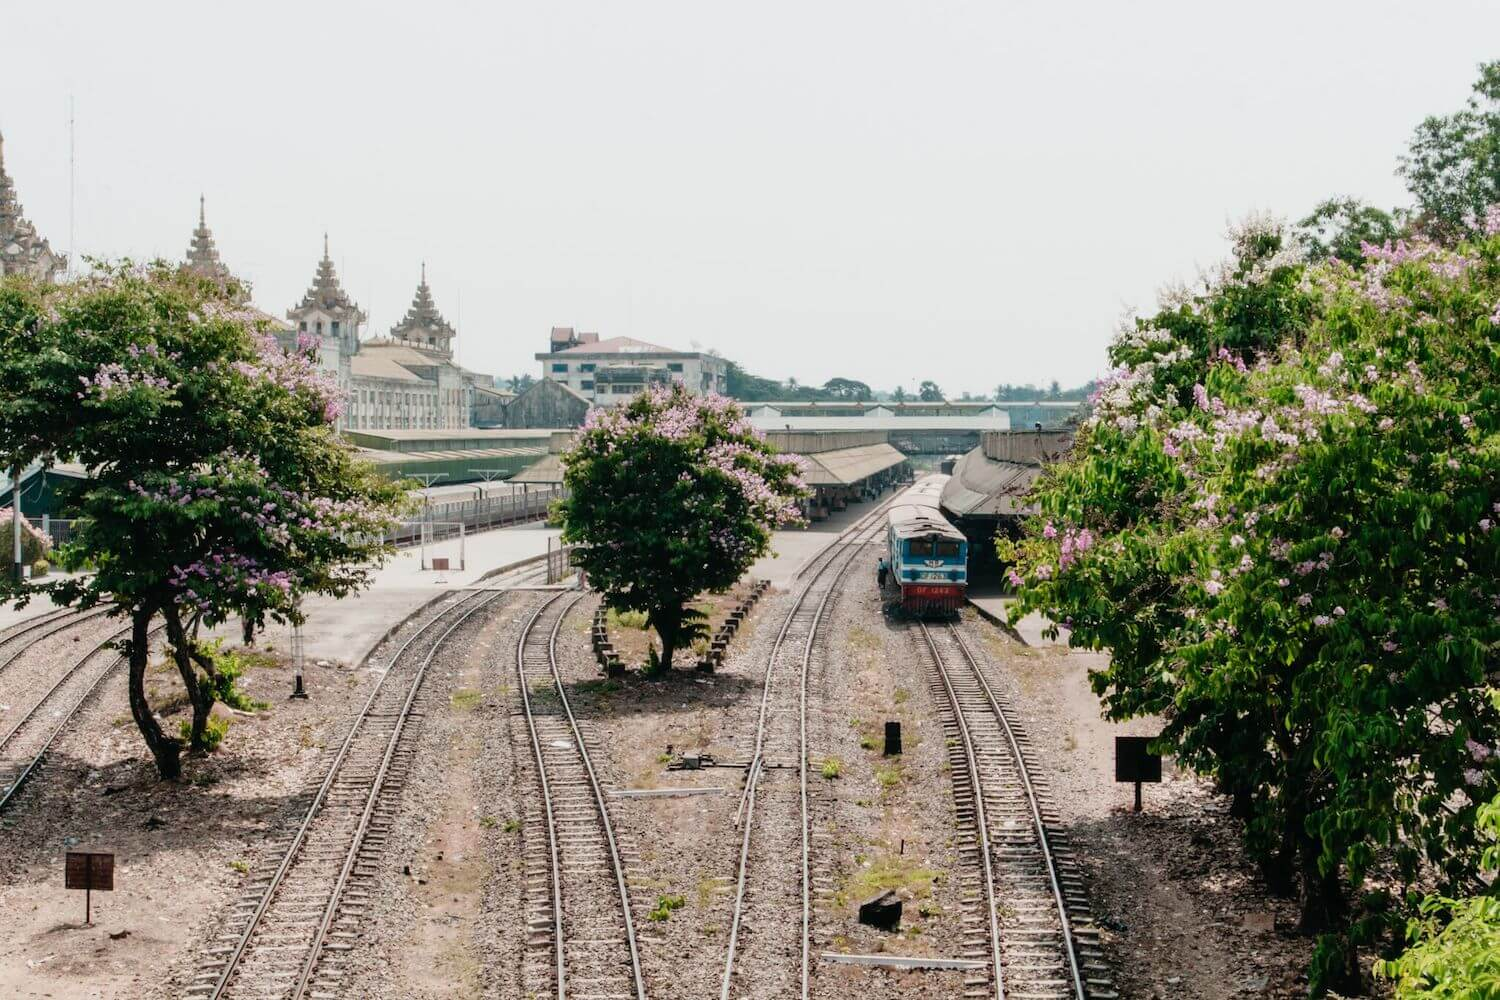 Best Myanmar Itinerary: Photo of Yangon train station, once capital of Burma, showing trees in bloom and old colonial buildings. Photo taken by Ryan Brown of Lost Boy Memoirs with Canon 650D Rebel T4i, edited in Adobe Lightroom.